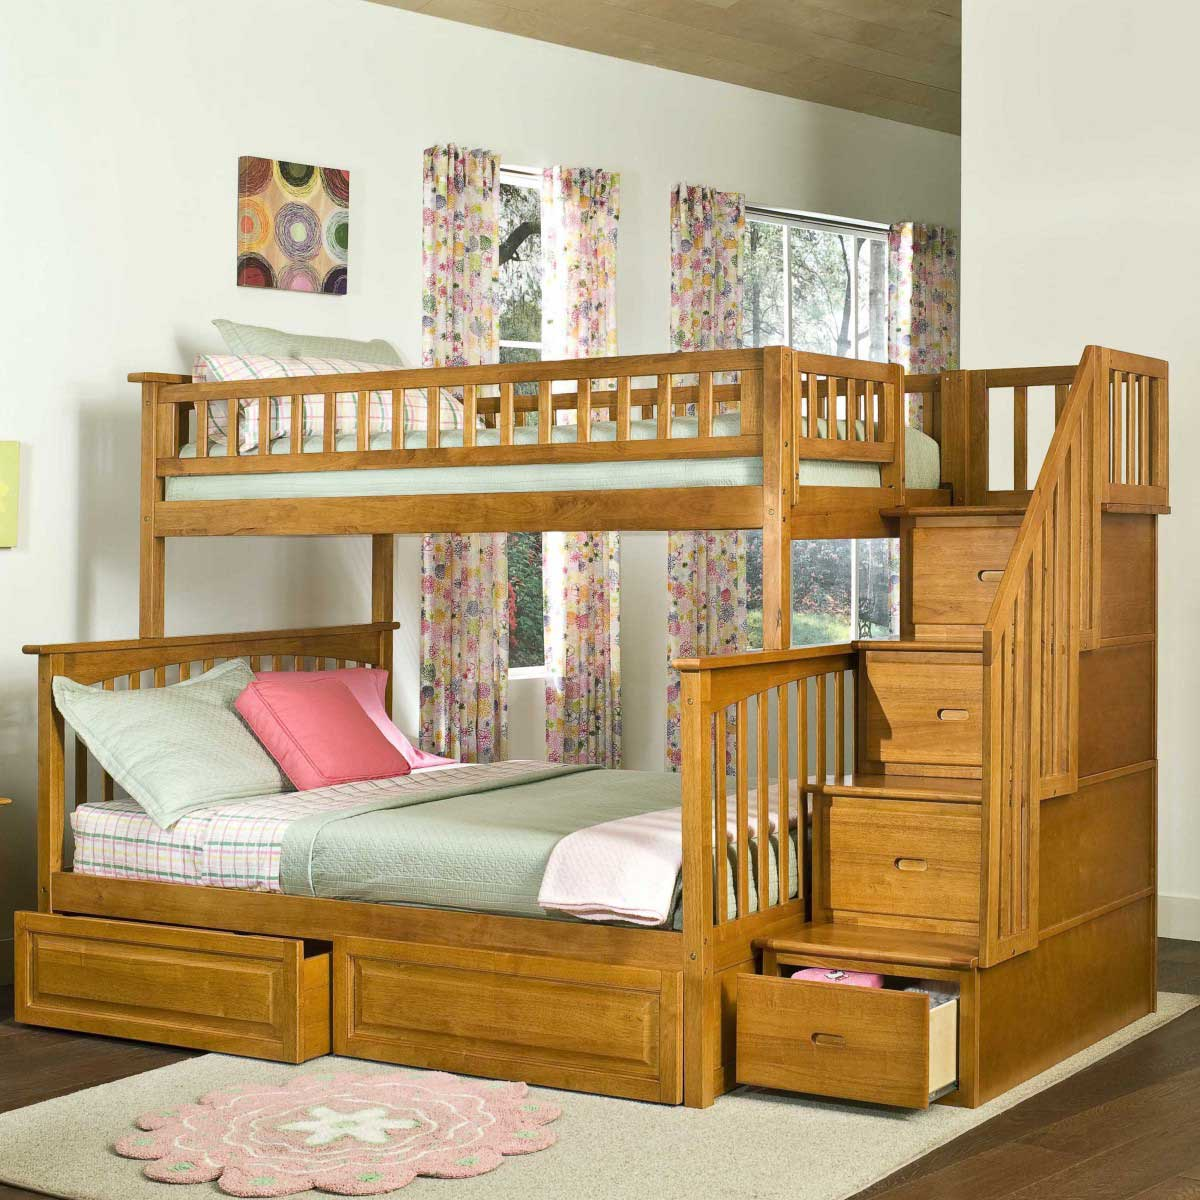 Attractive cheap bunk beds for kids with area rugs and laminate flooring combined with picture on the wall for kids bed room ideas